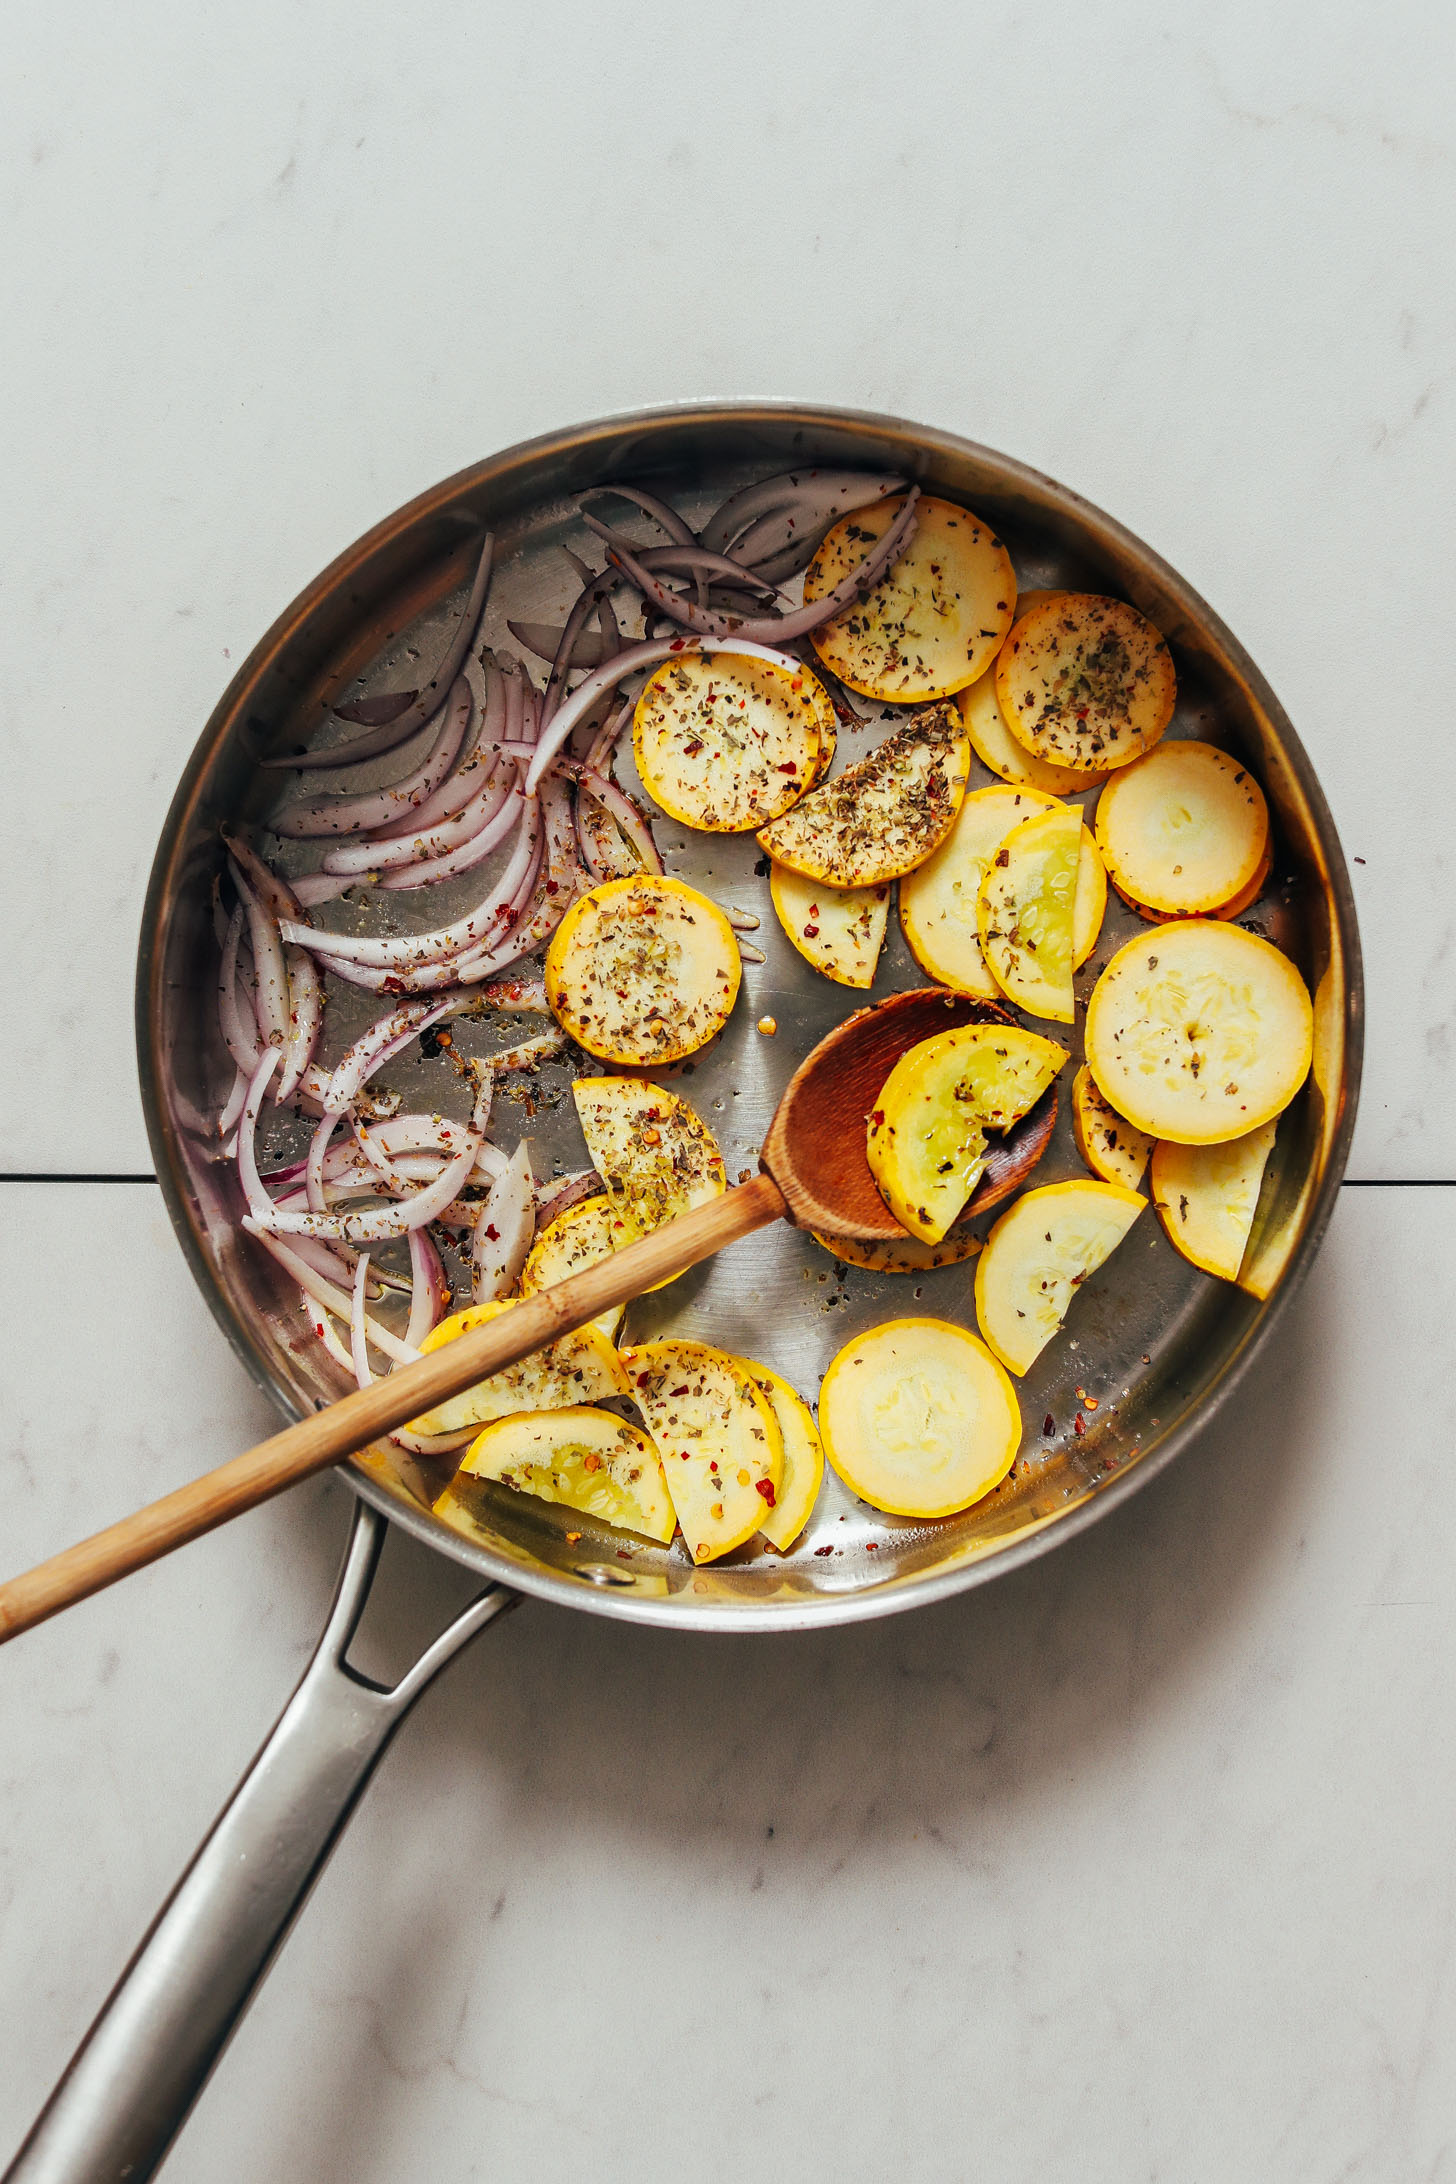 Sautéing yellow squash and red onion in a skillet with Italian seasonings